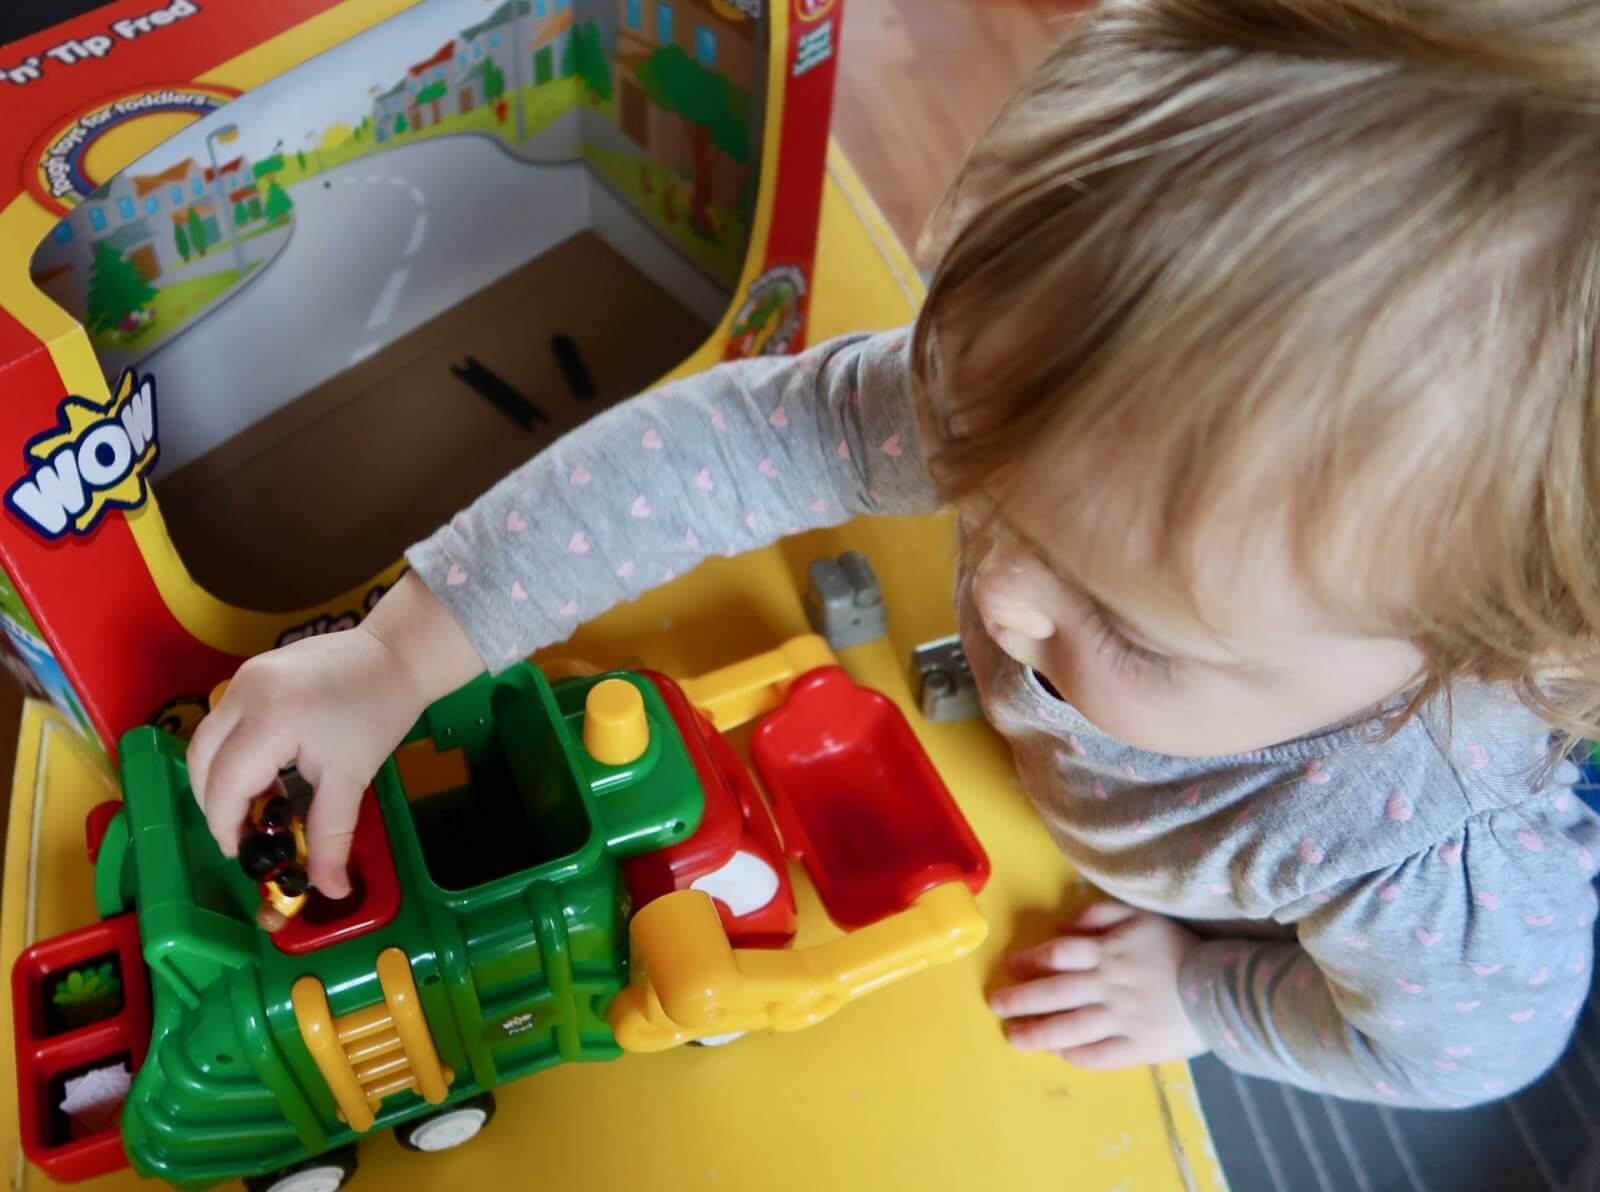 flip 'n' tip fred recycling truck wow toys review playing overhead